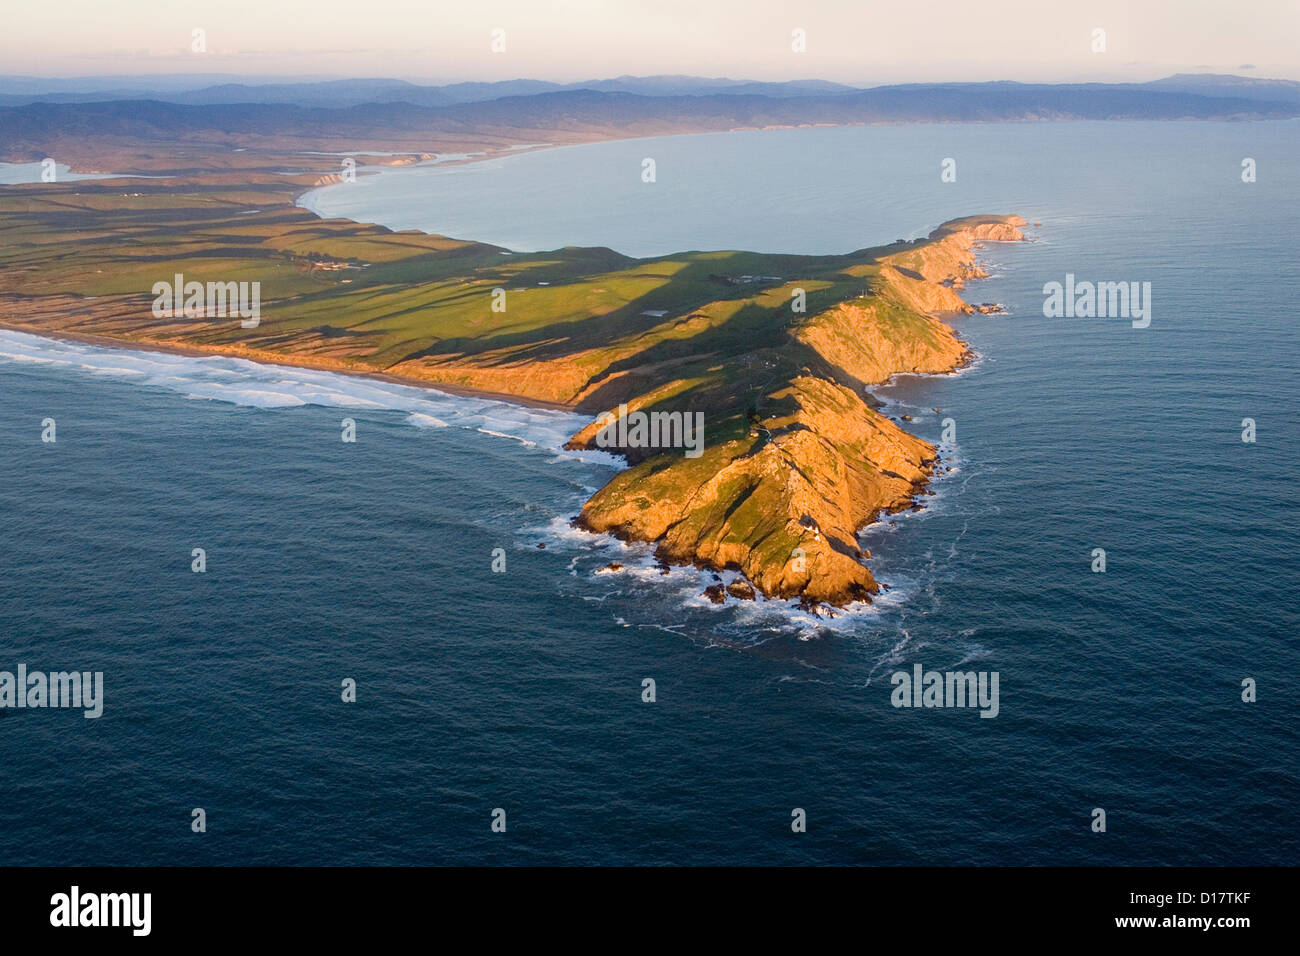 Aerial view of Point Reyes, Callifornia. - Stock Image